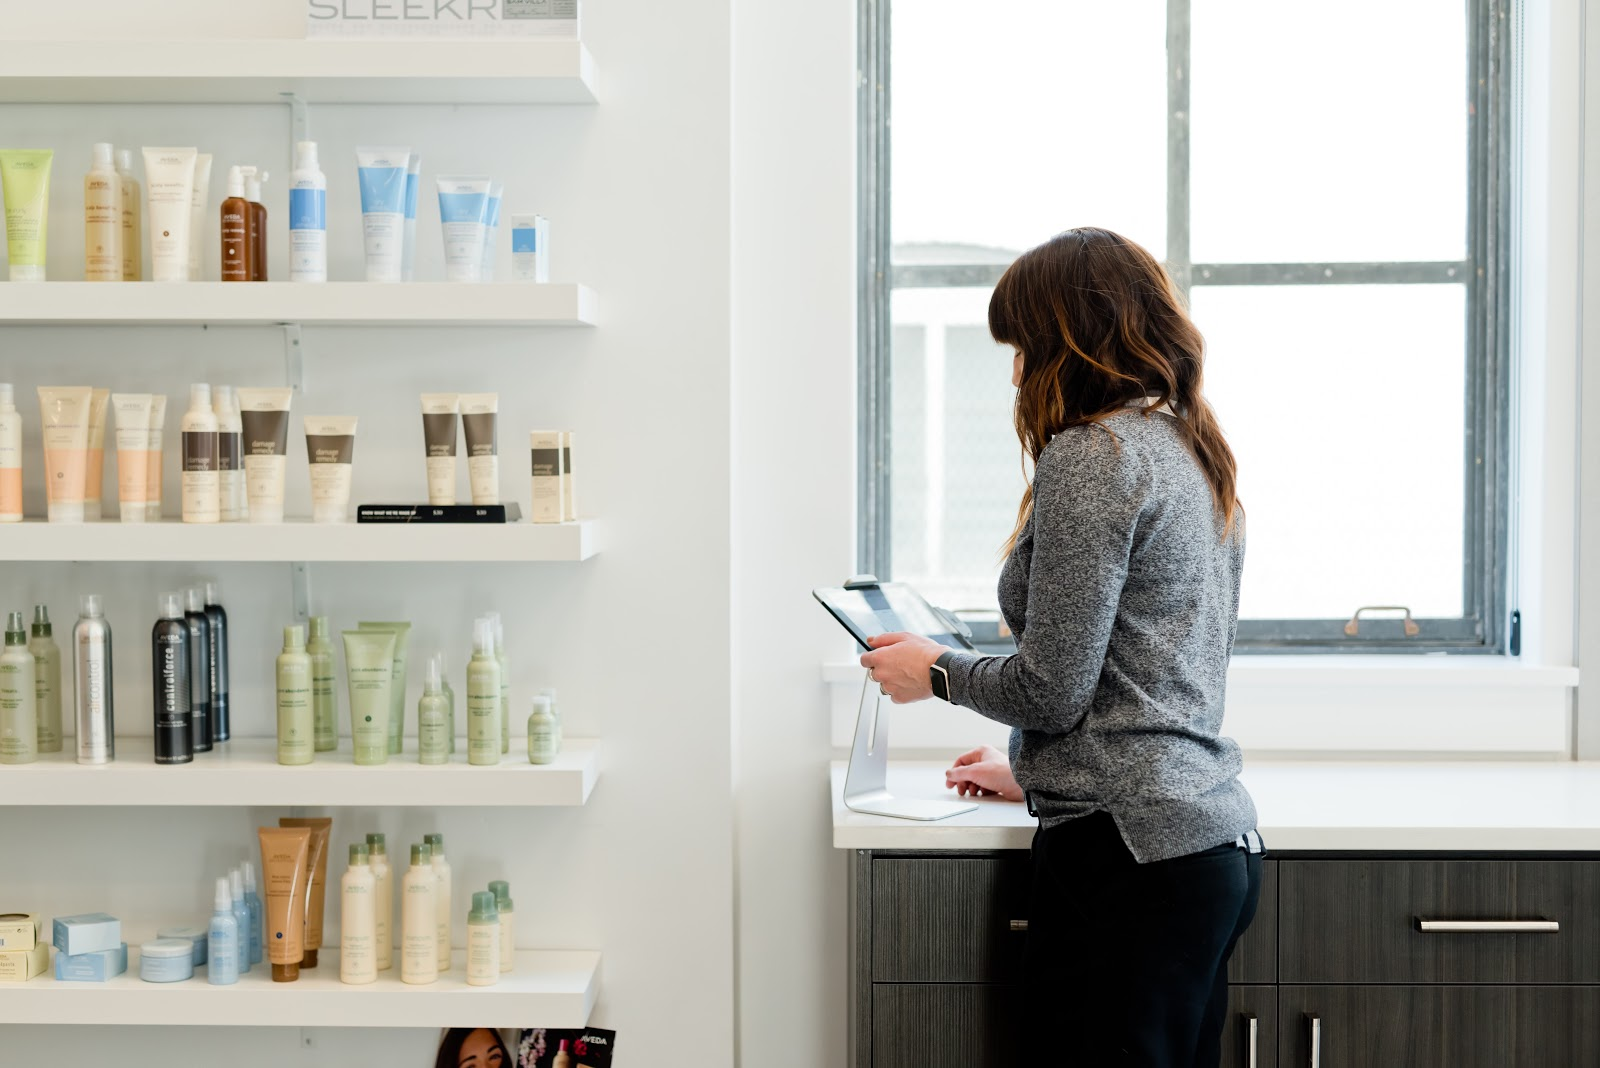 Image with customer looking at skincare products